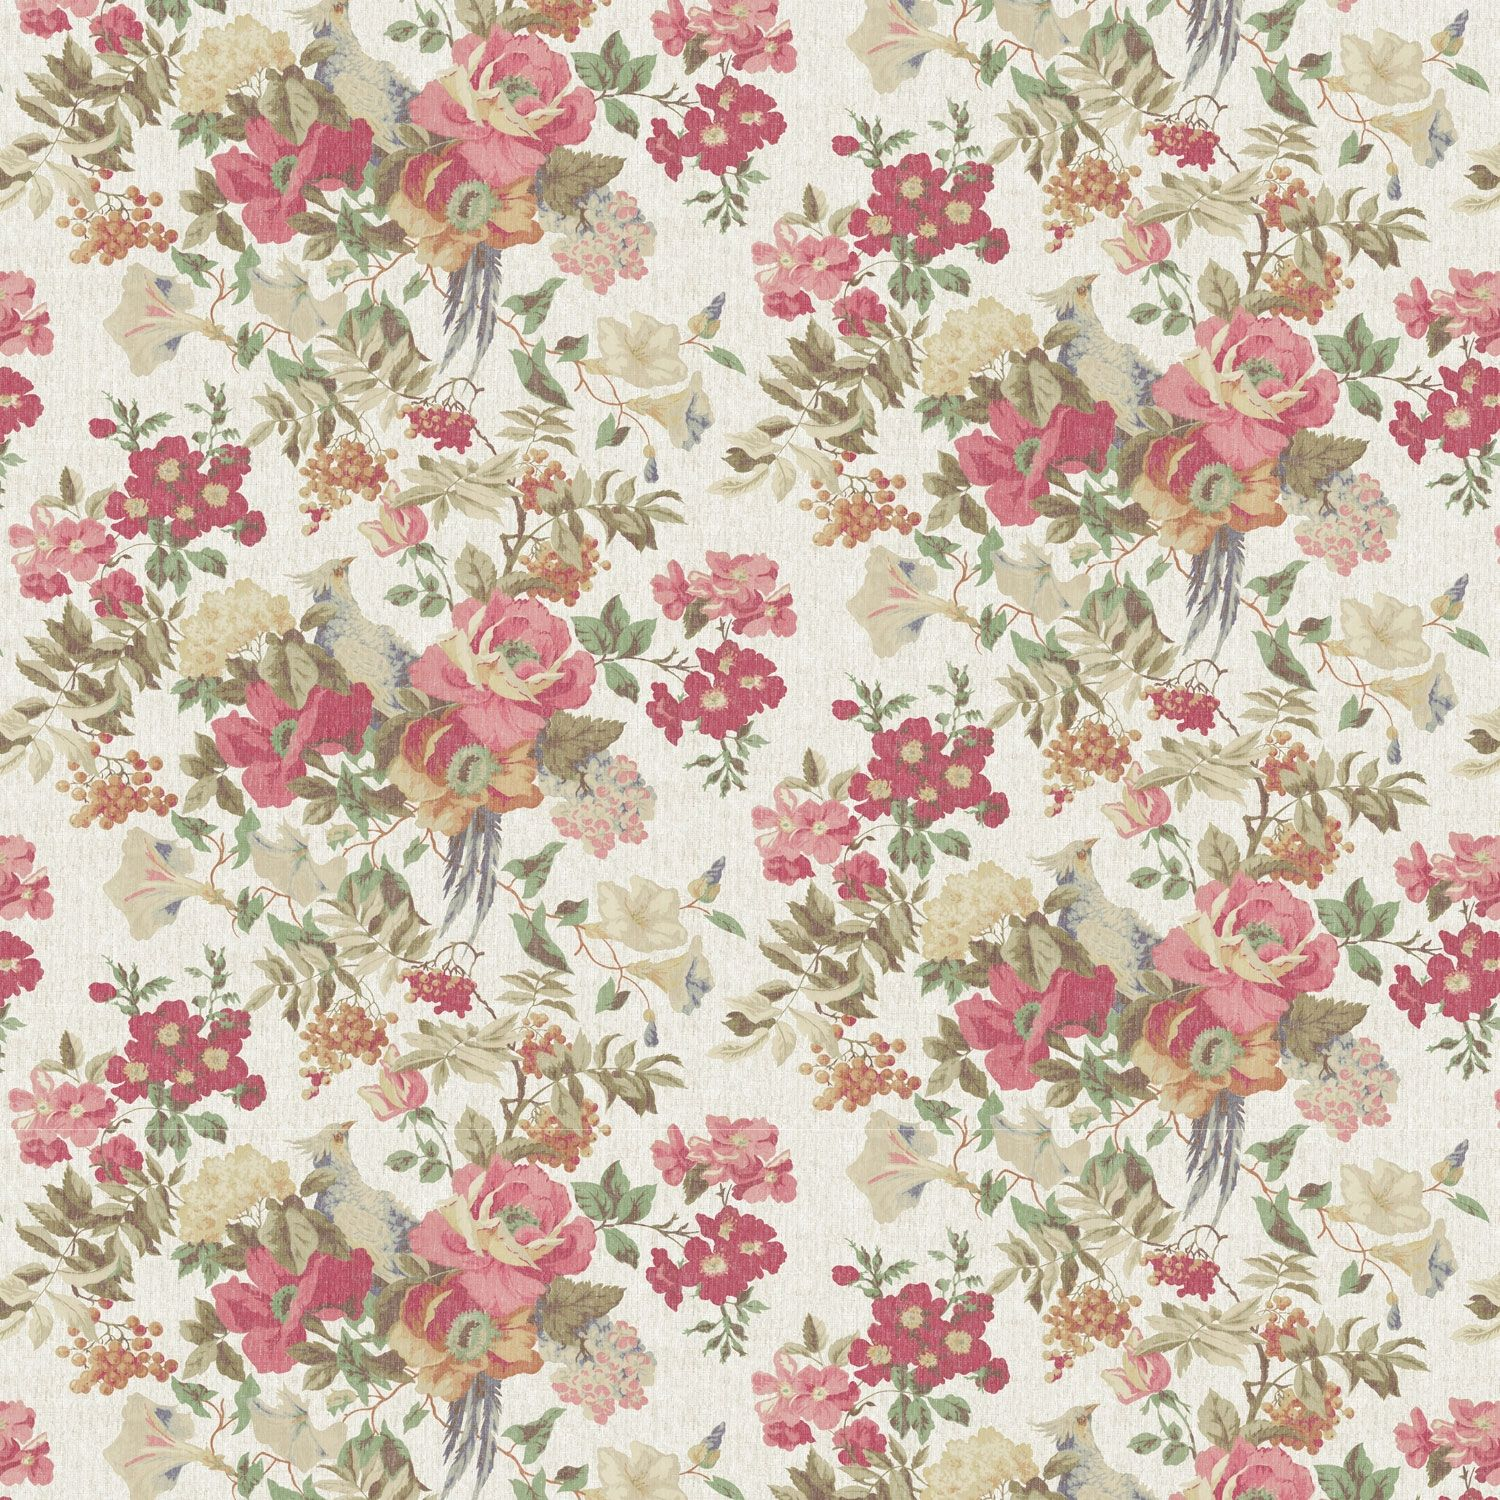 Vintage Floral Wallpaper HD For PC